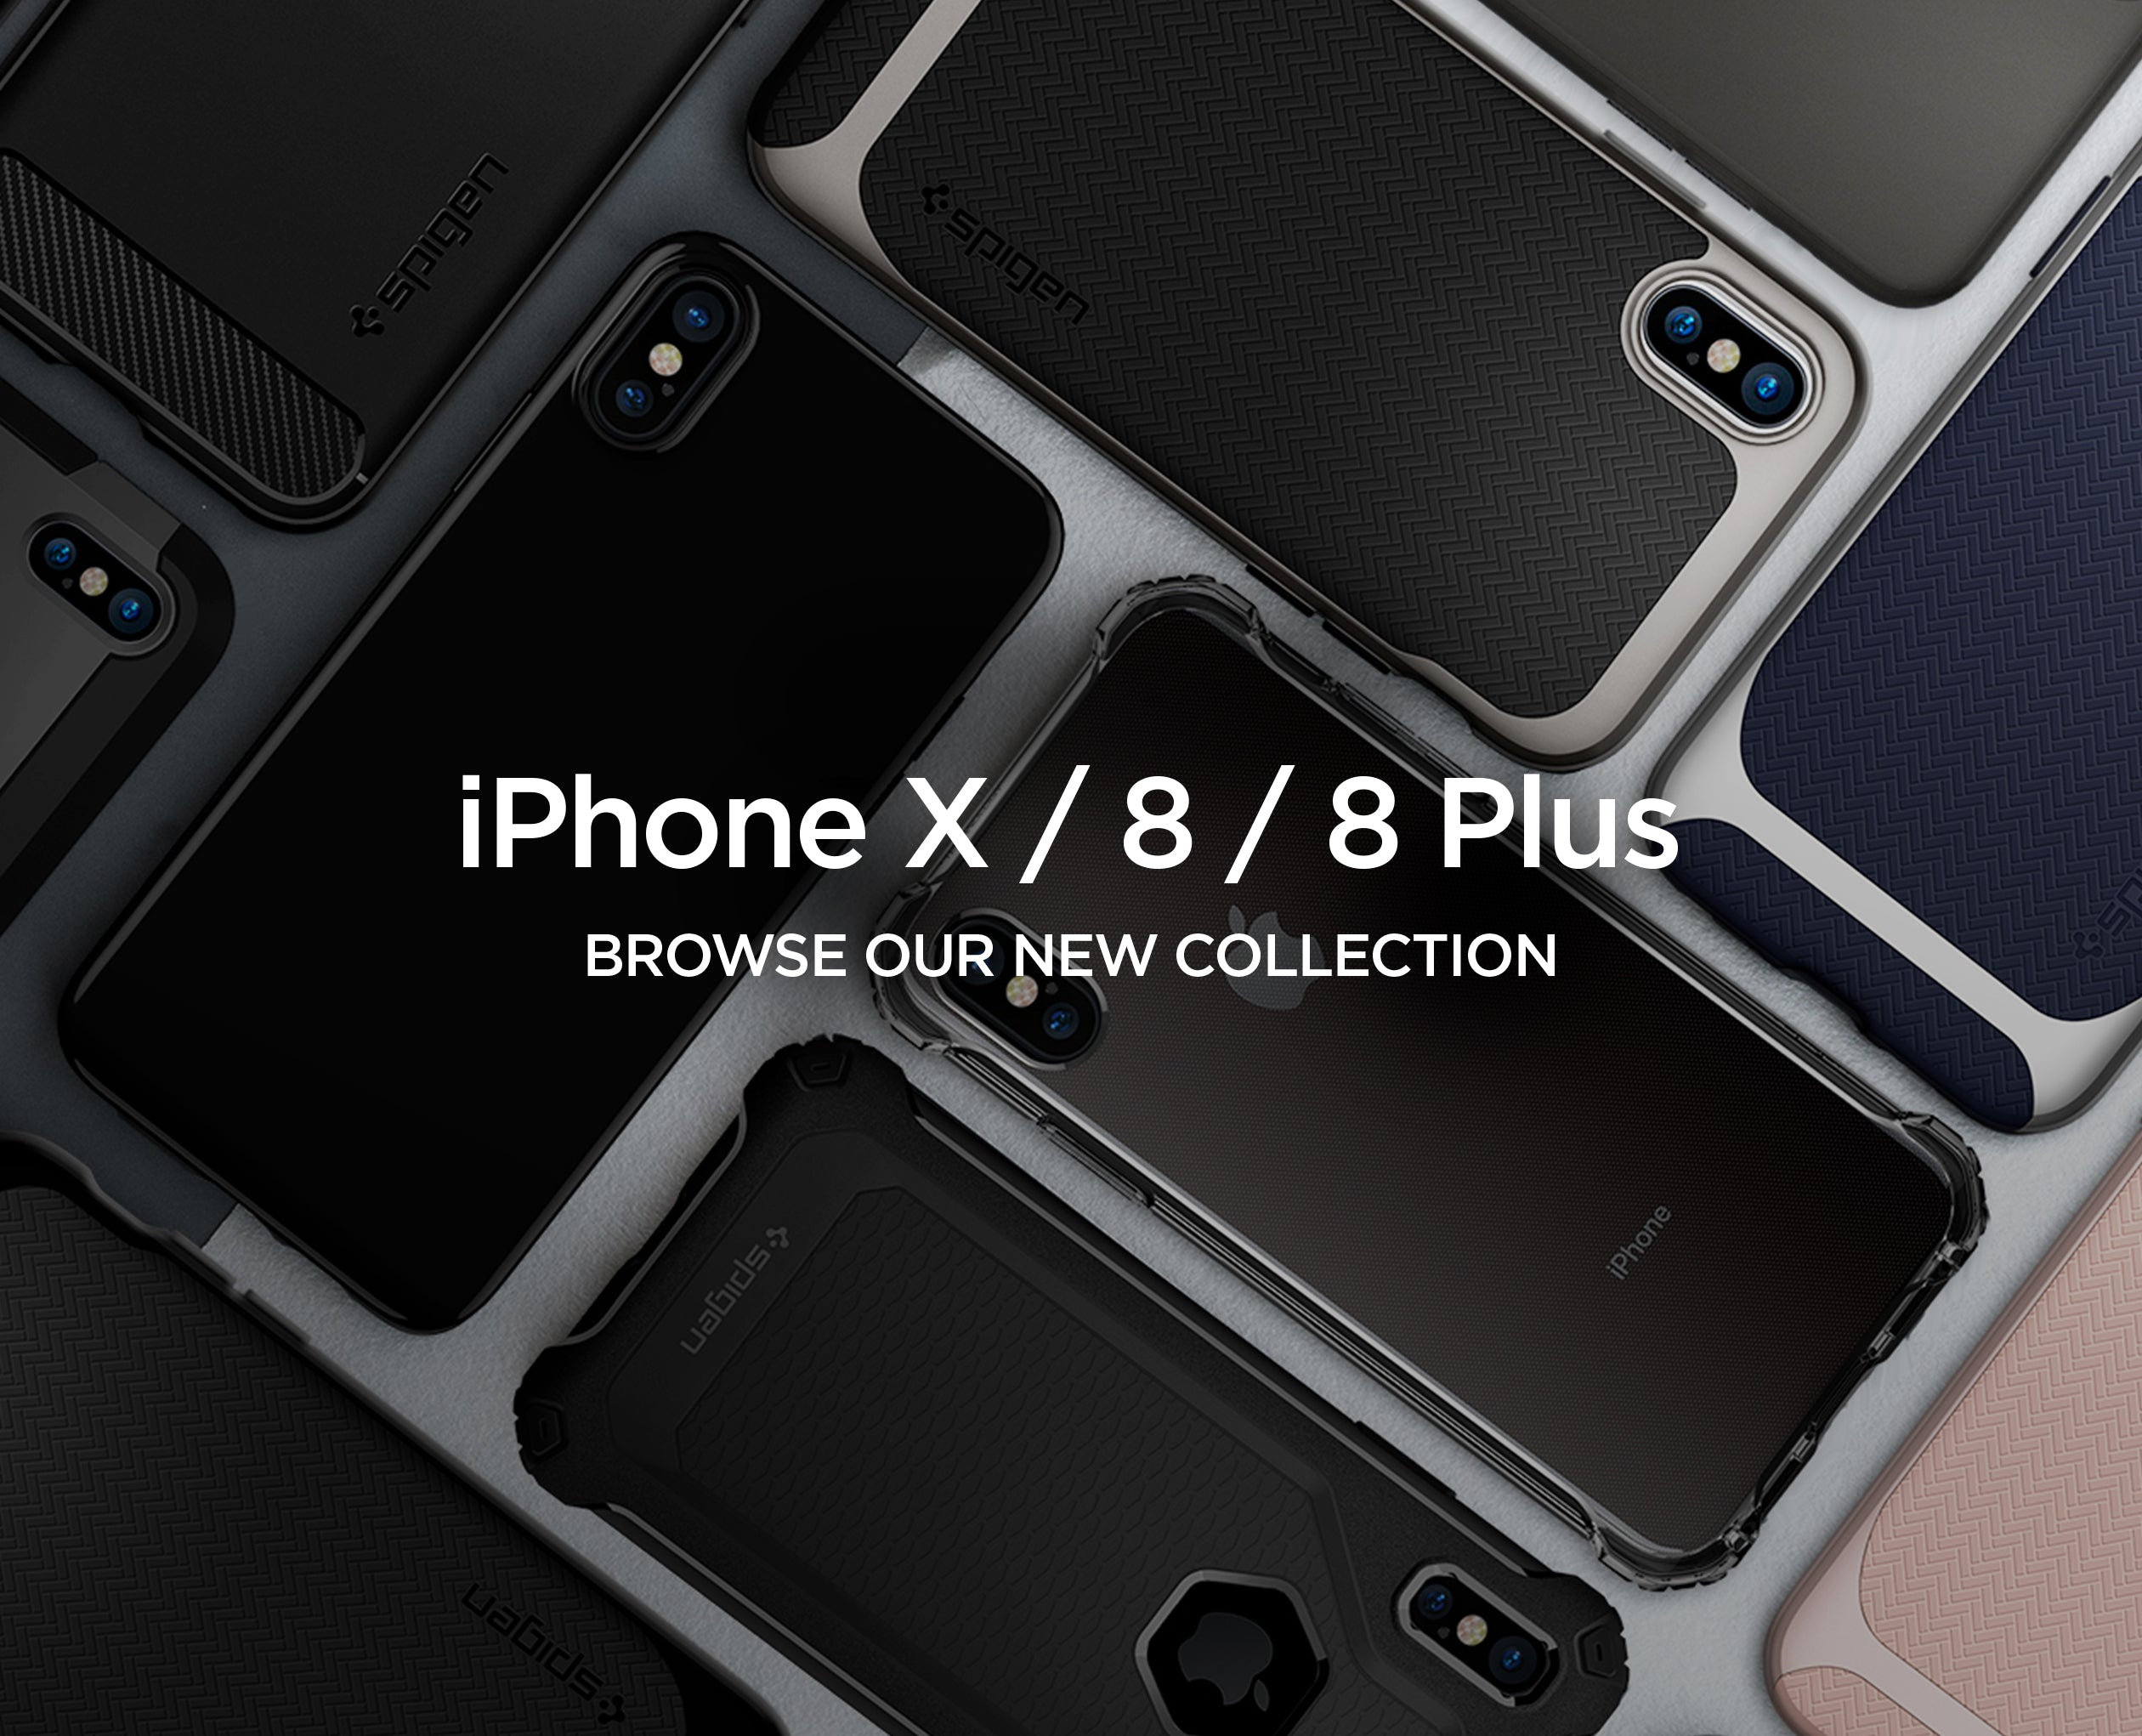 New iPhone Series